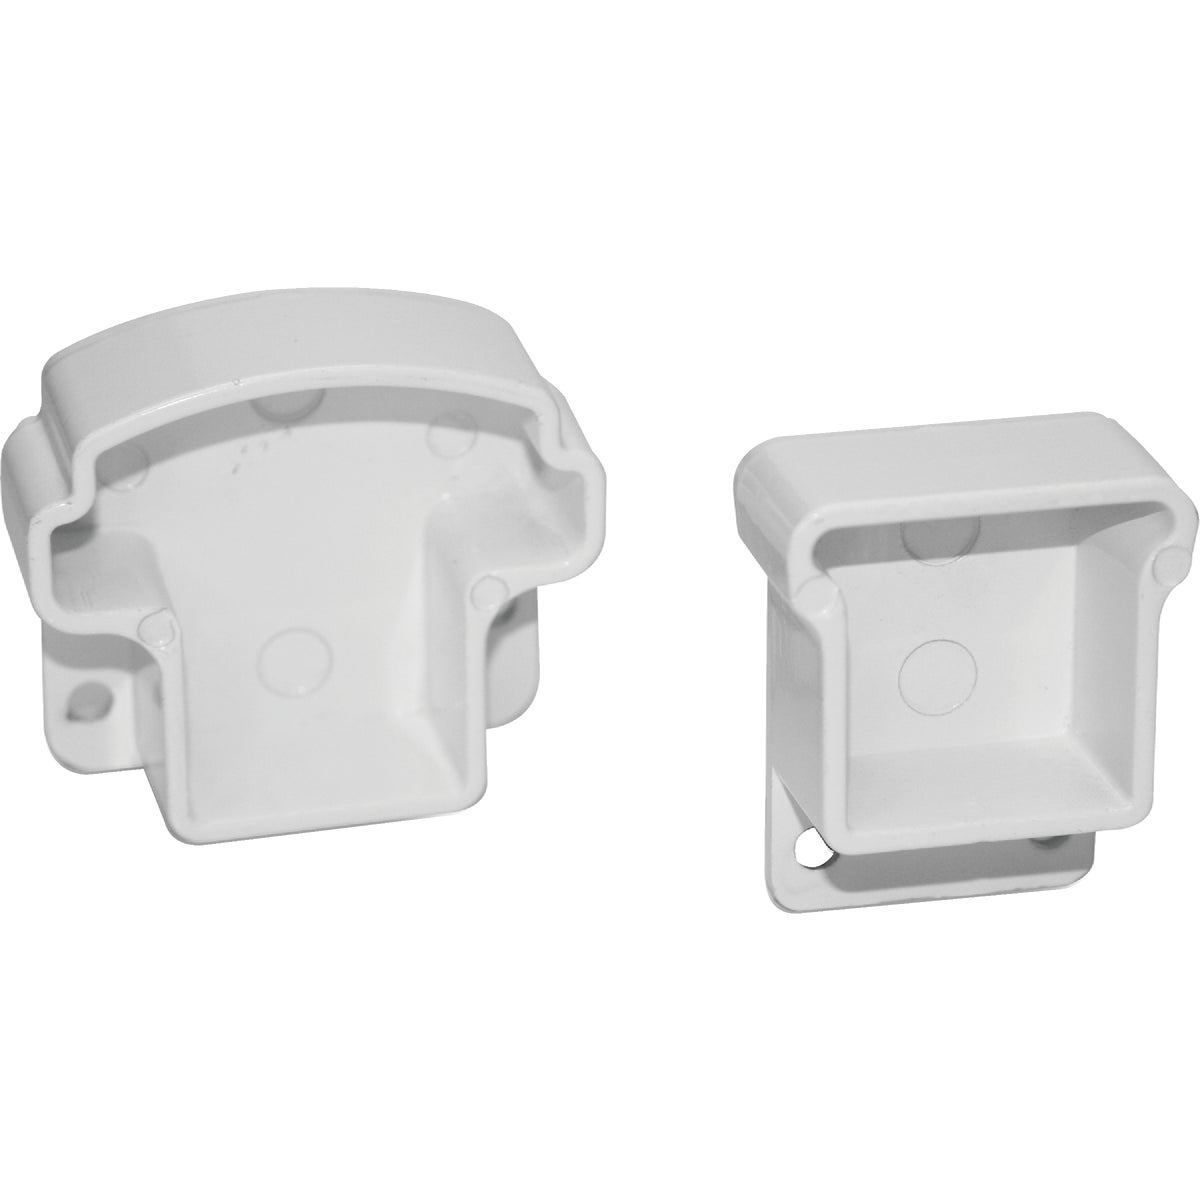 WHITE MOUNTING BRACKET - 629065W by Gilpin Inc